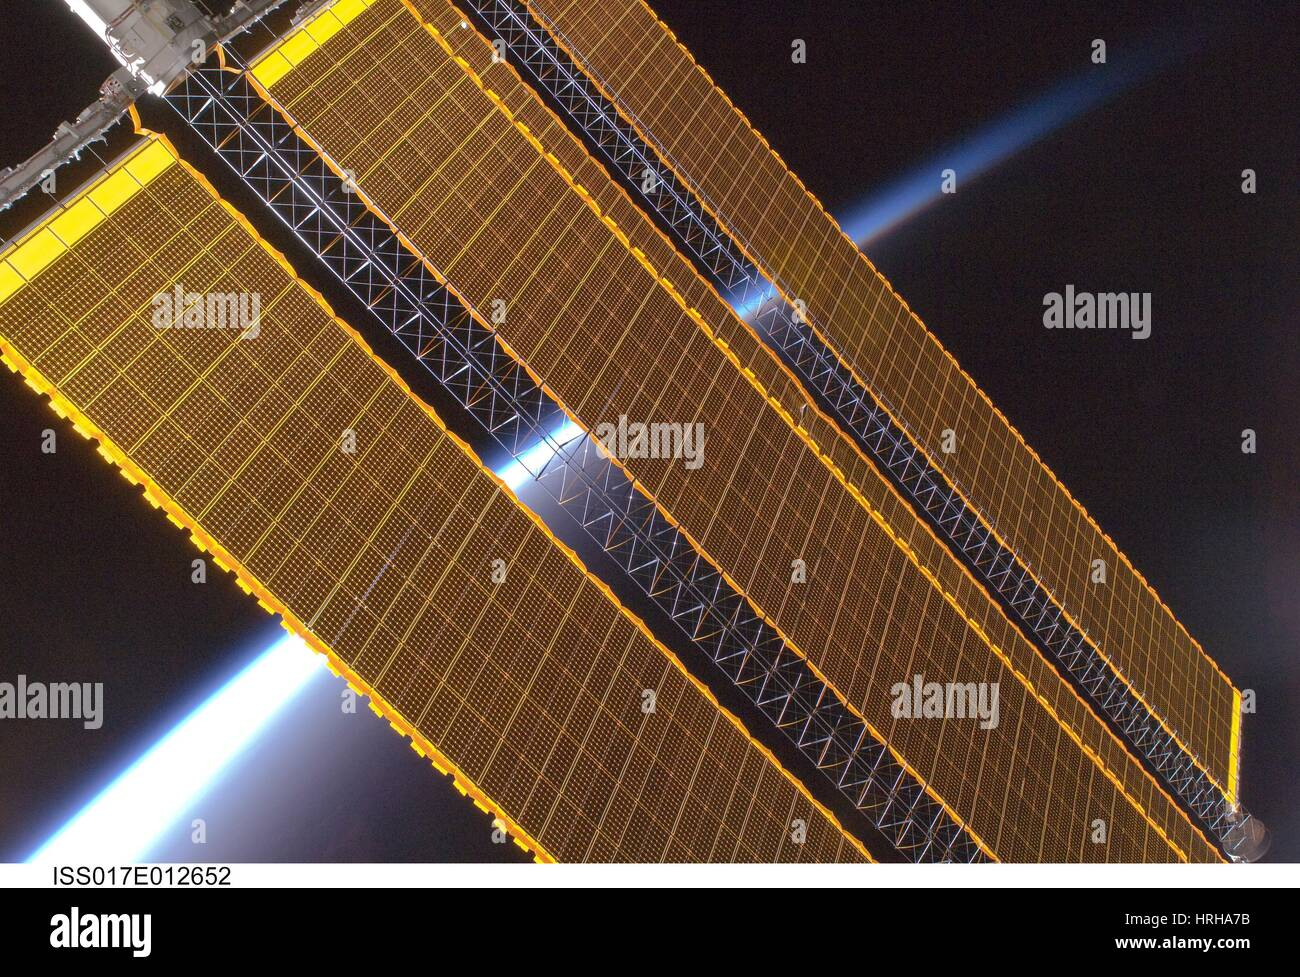 Expedition 17, ISS Solar Array, 2008 - Stock Image